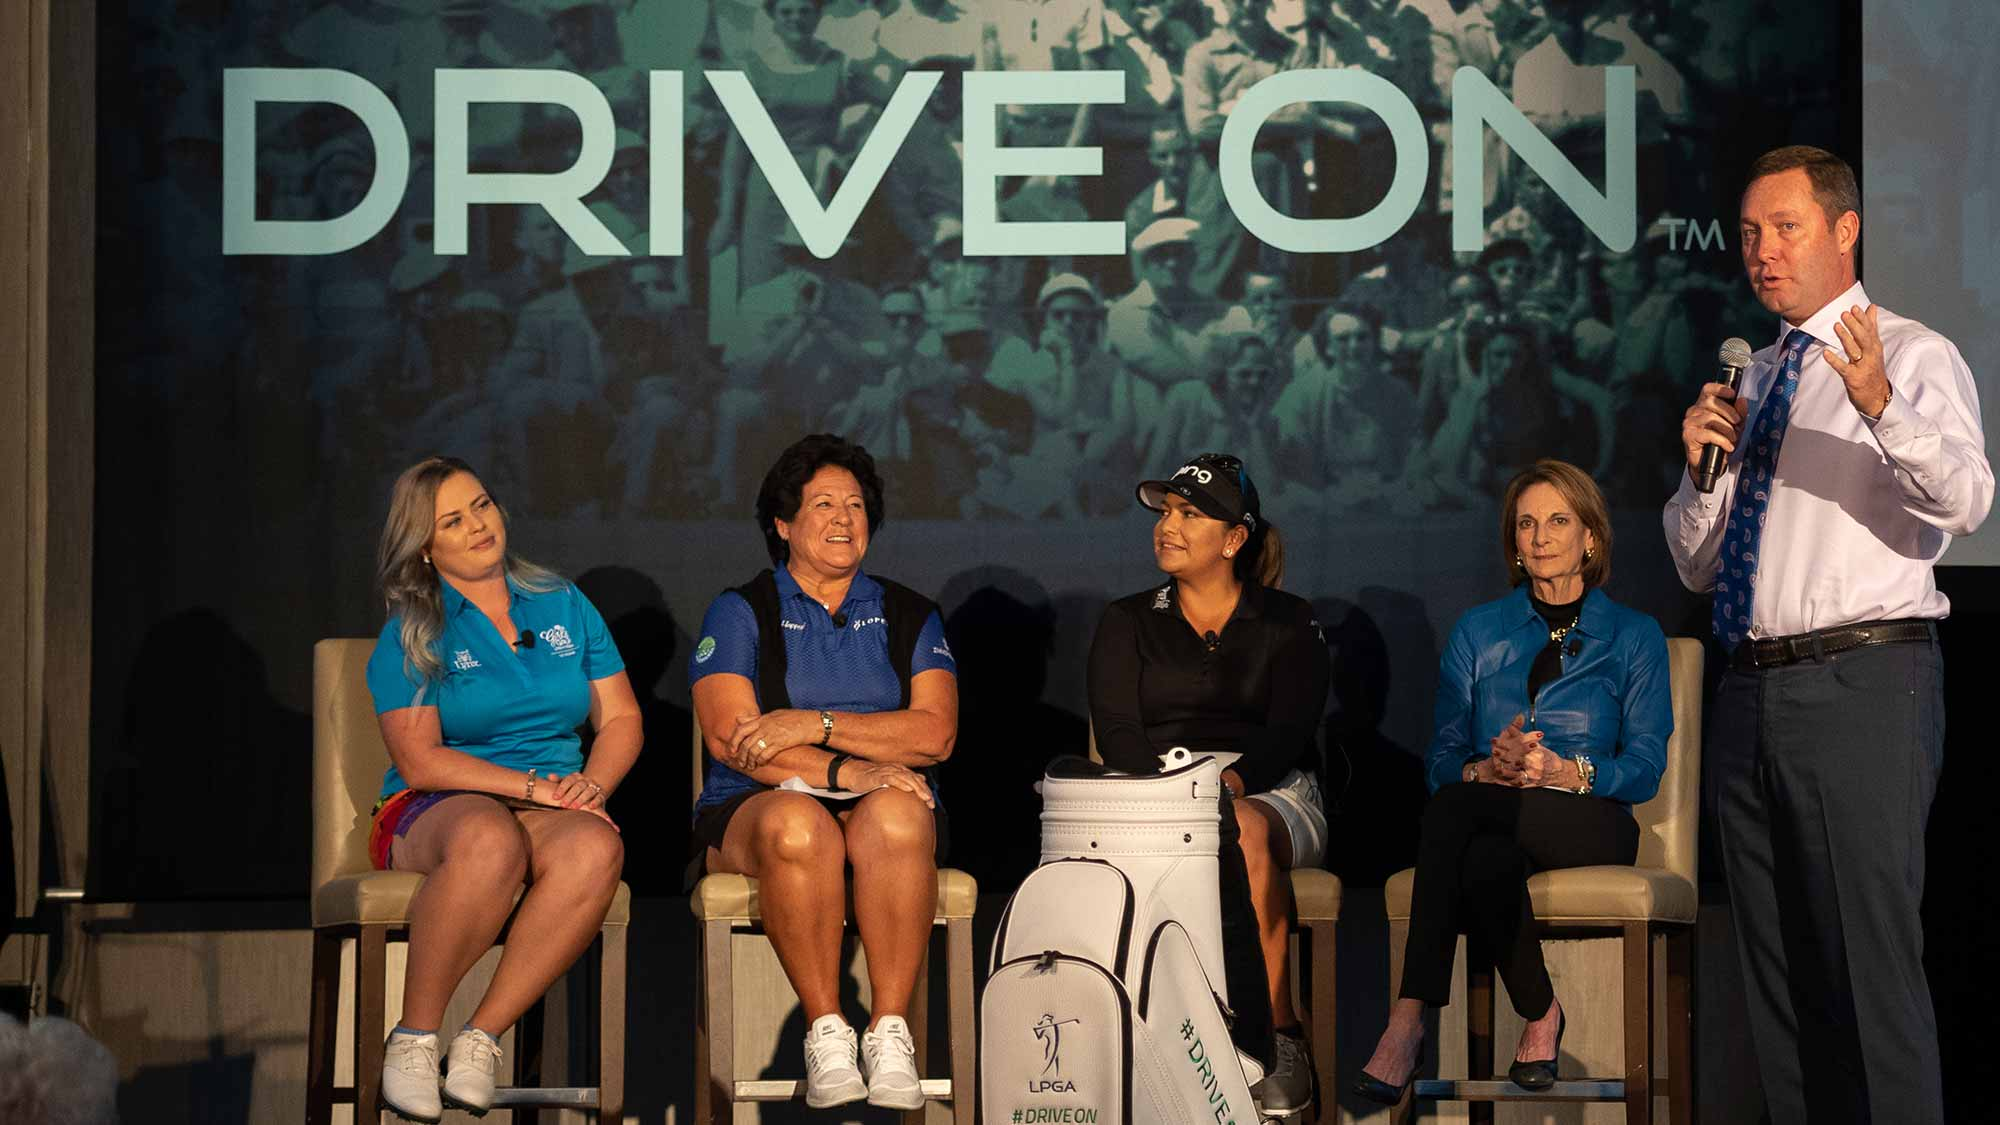 LPGA Commissioner Michael Whan speaks during the LPGA Announcement of new brand positioning encouraging girls to #DriveOn at JW Marriott Phoenix Desert Ridge on March 20, 2019 in Phoenix, Arizona